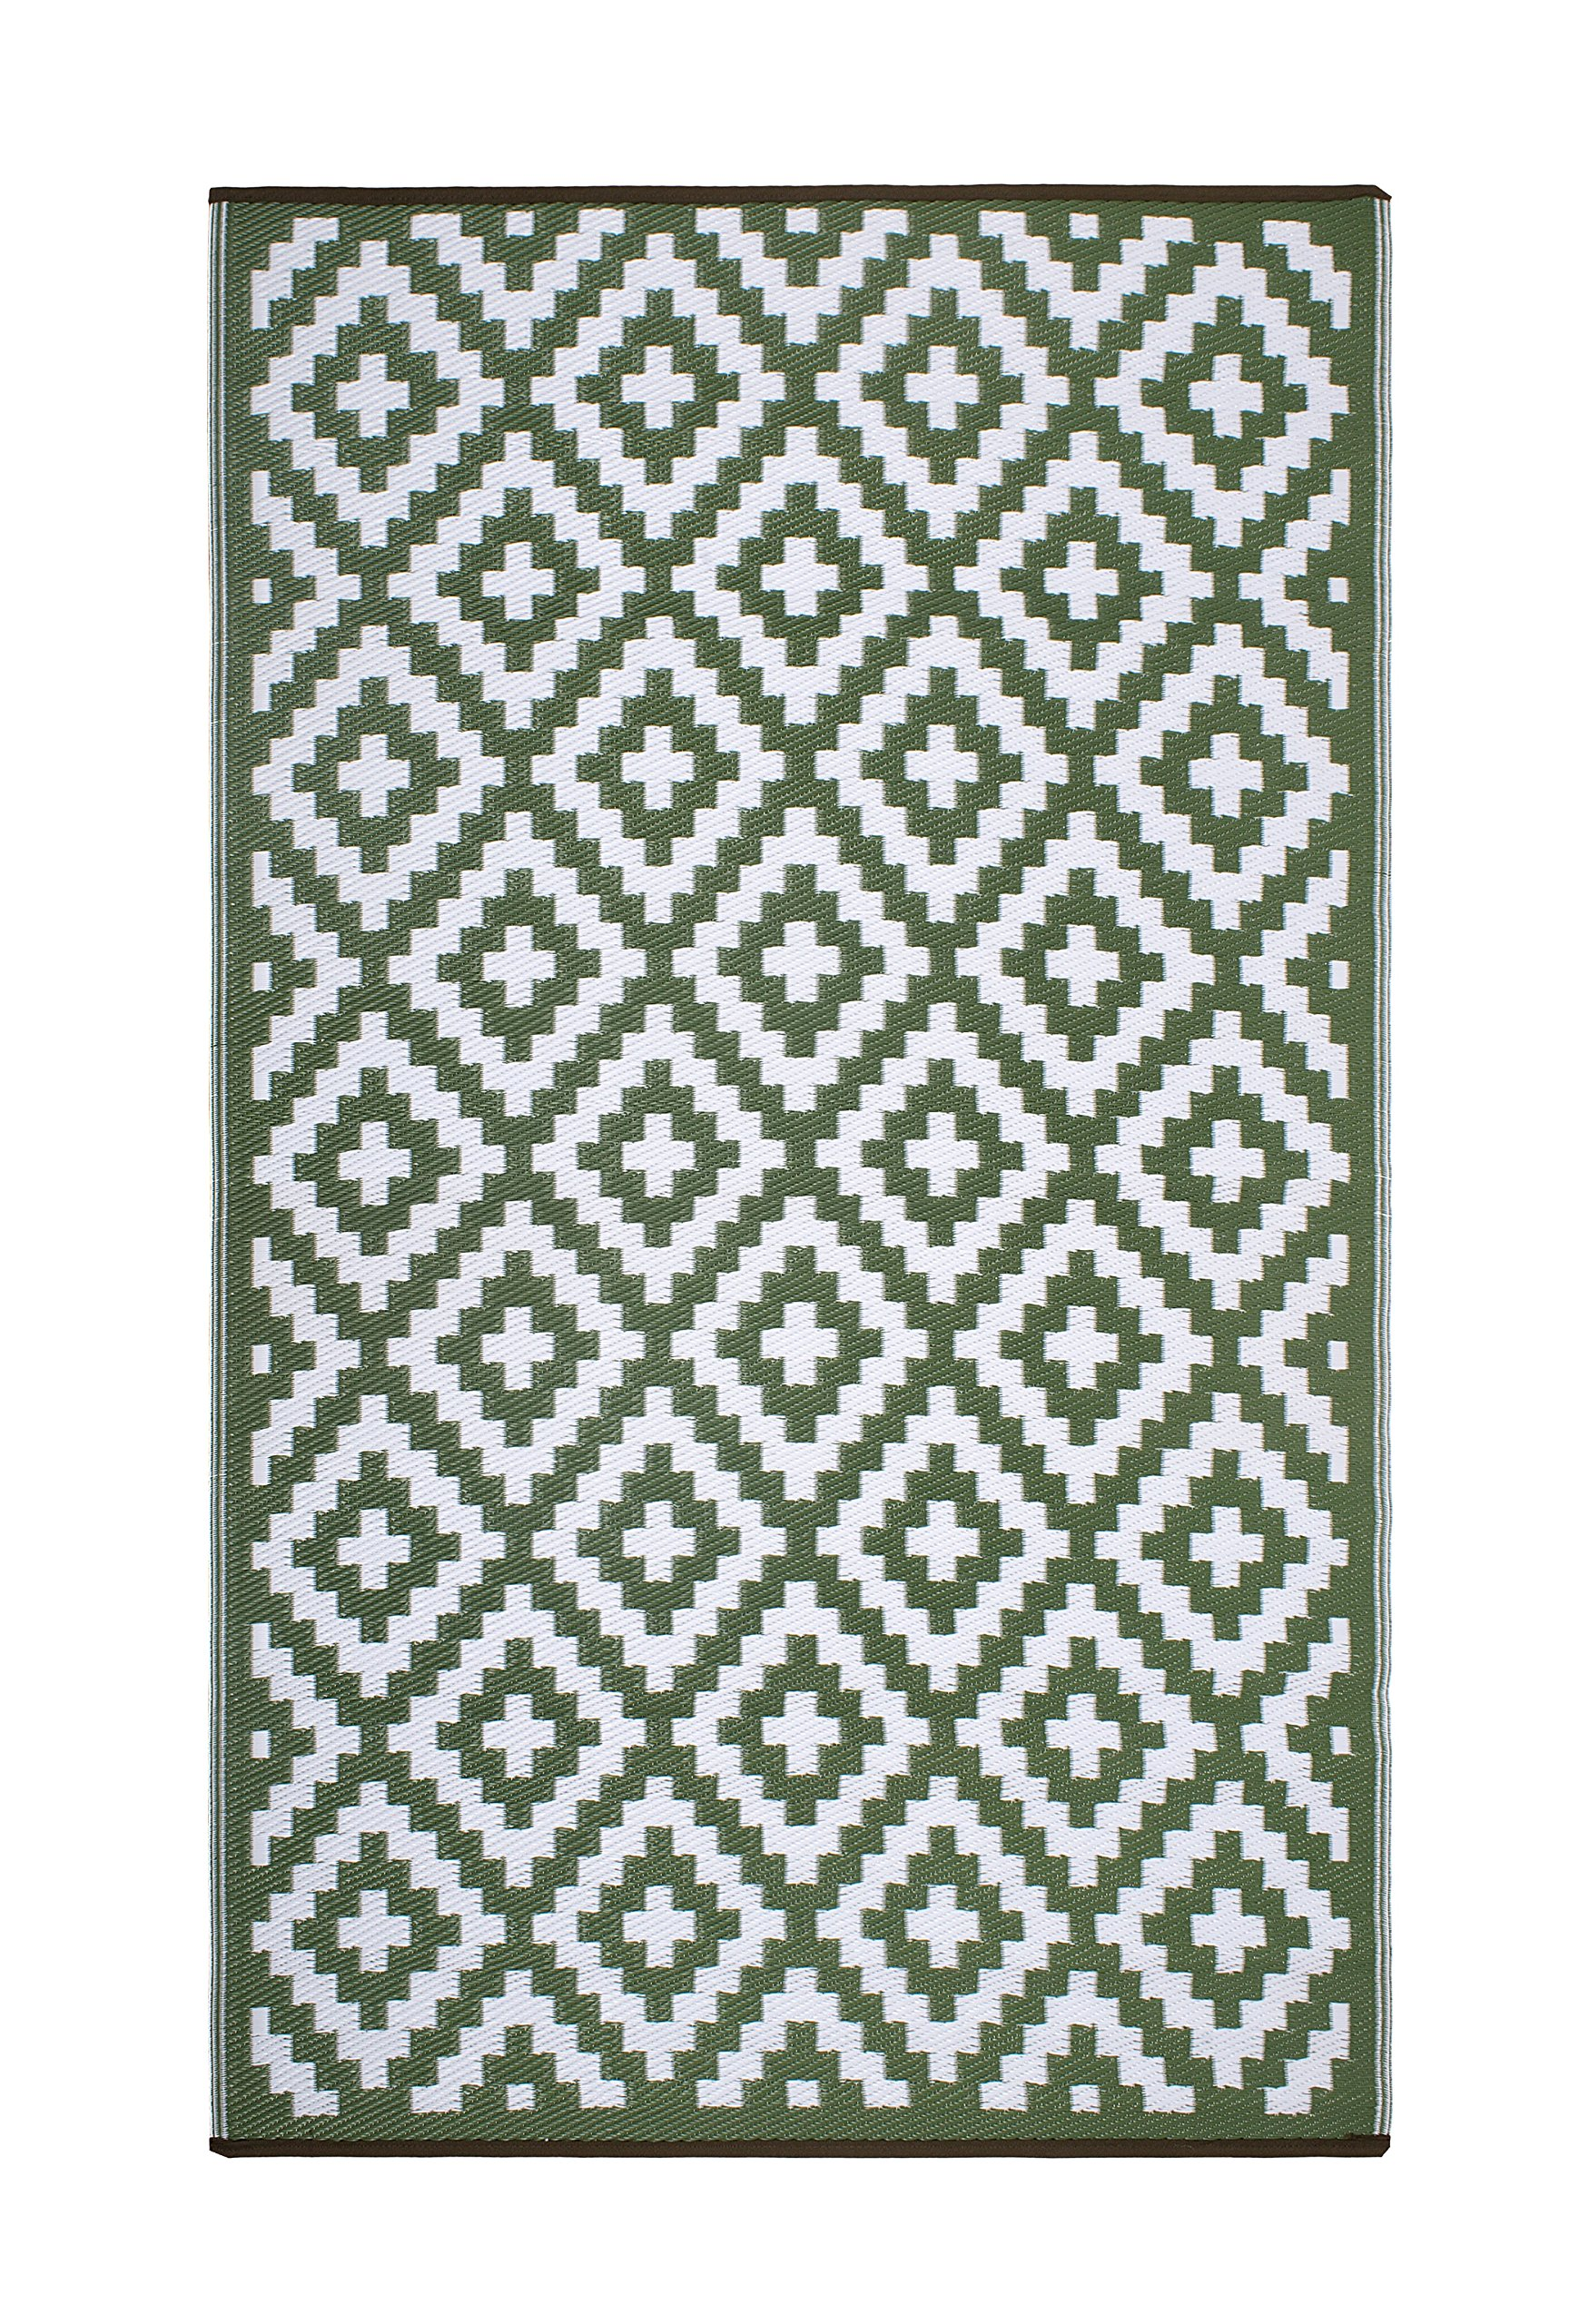 FH Home Indoor/Outdoor Recycled Plastic Floor Mat/Rug - Reversible - Weather & UV Resistant - Aztec - Leaf Green/White (3' x 5')